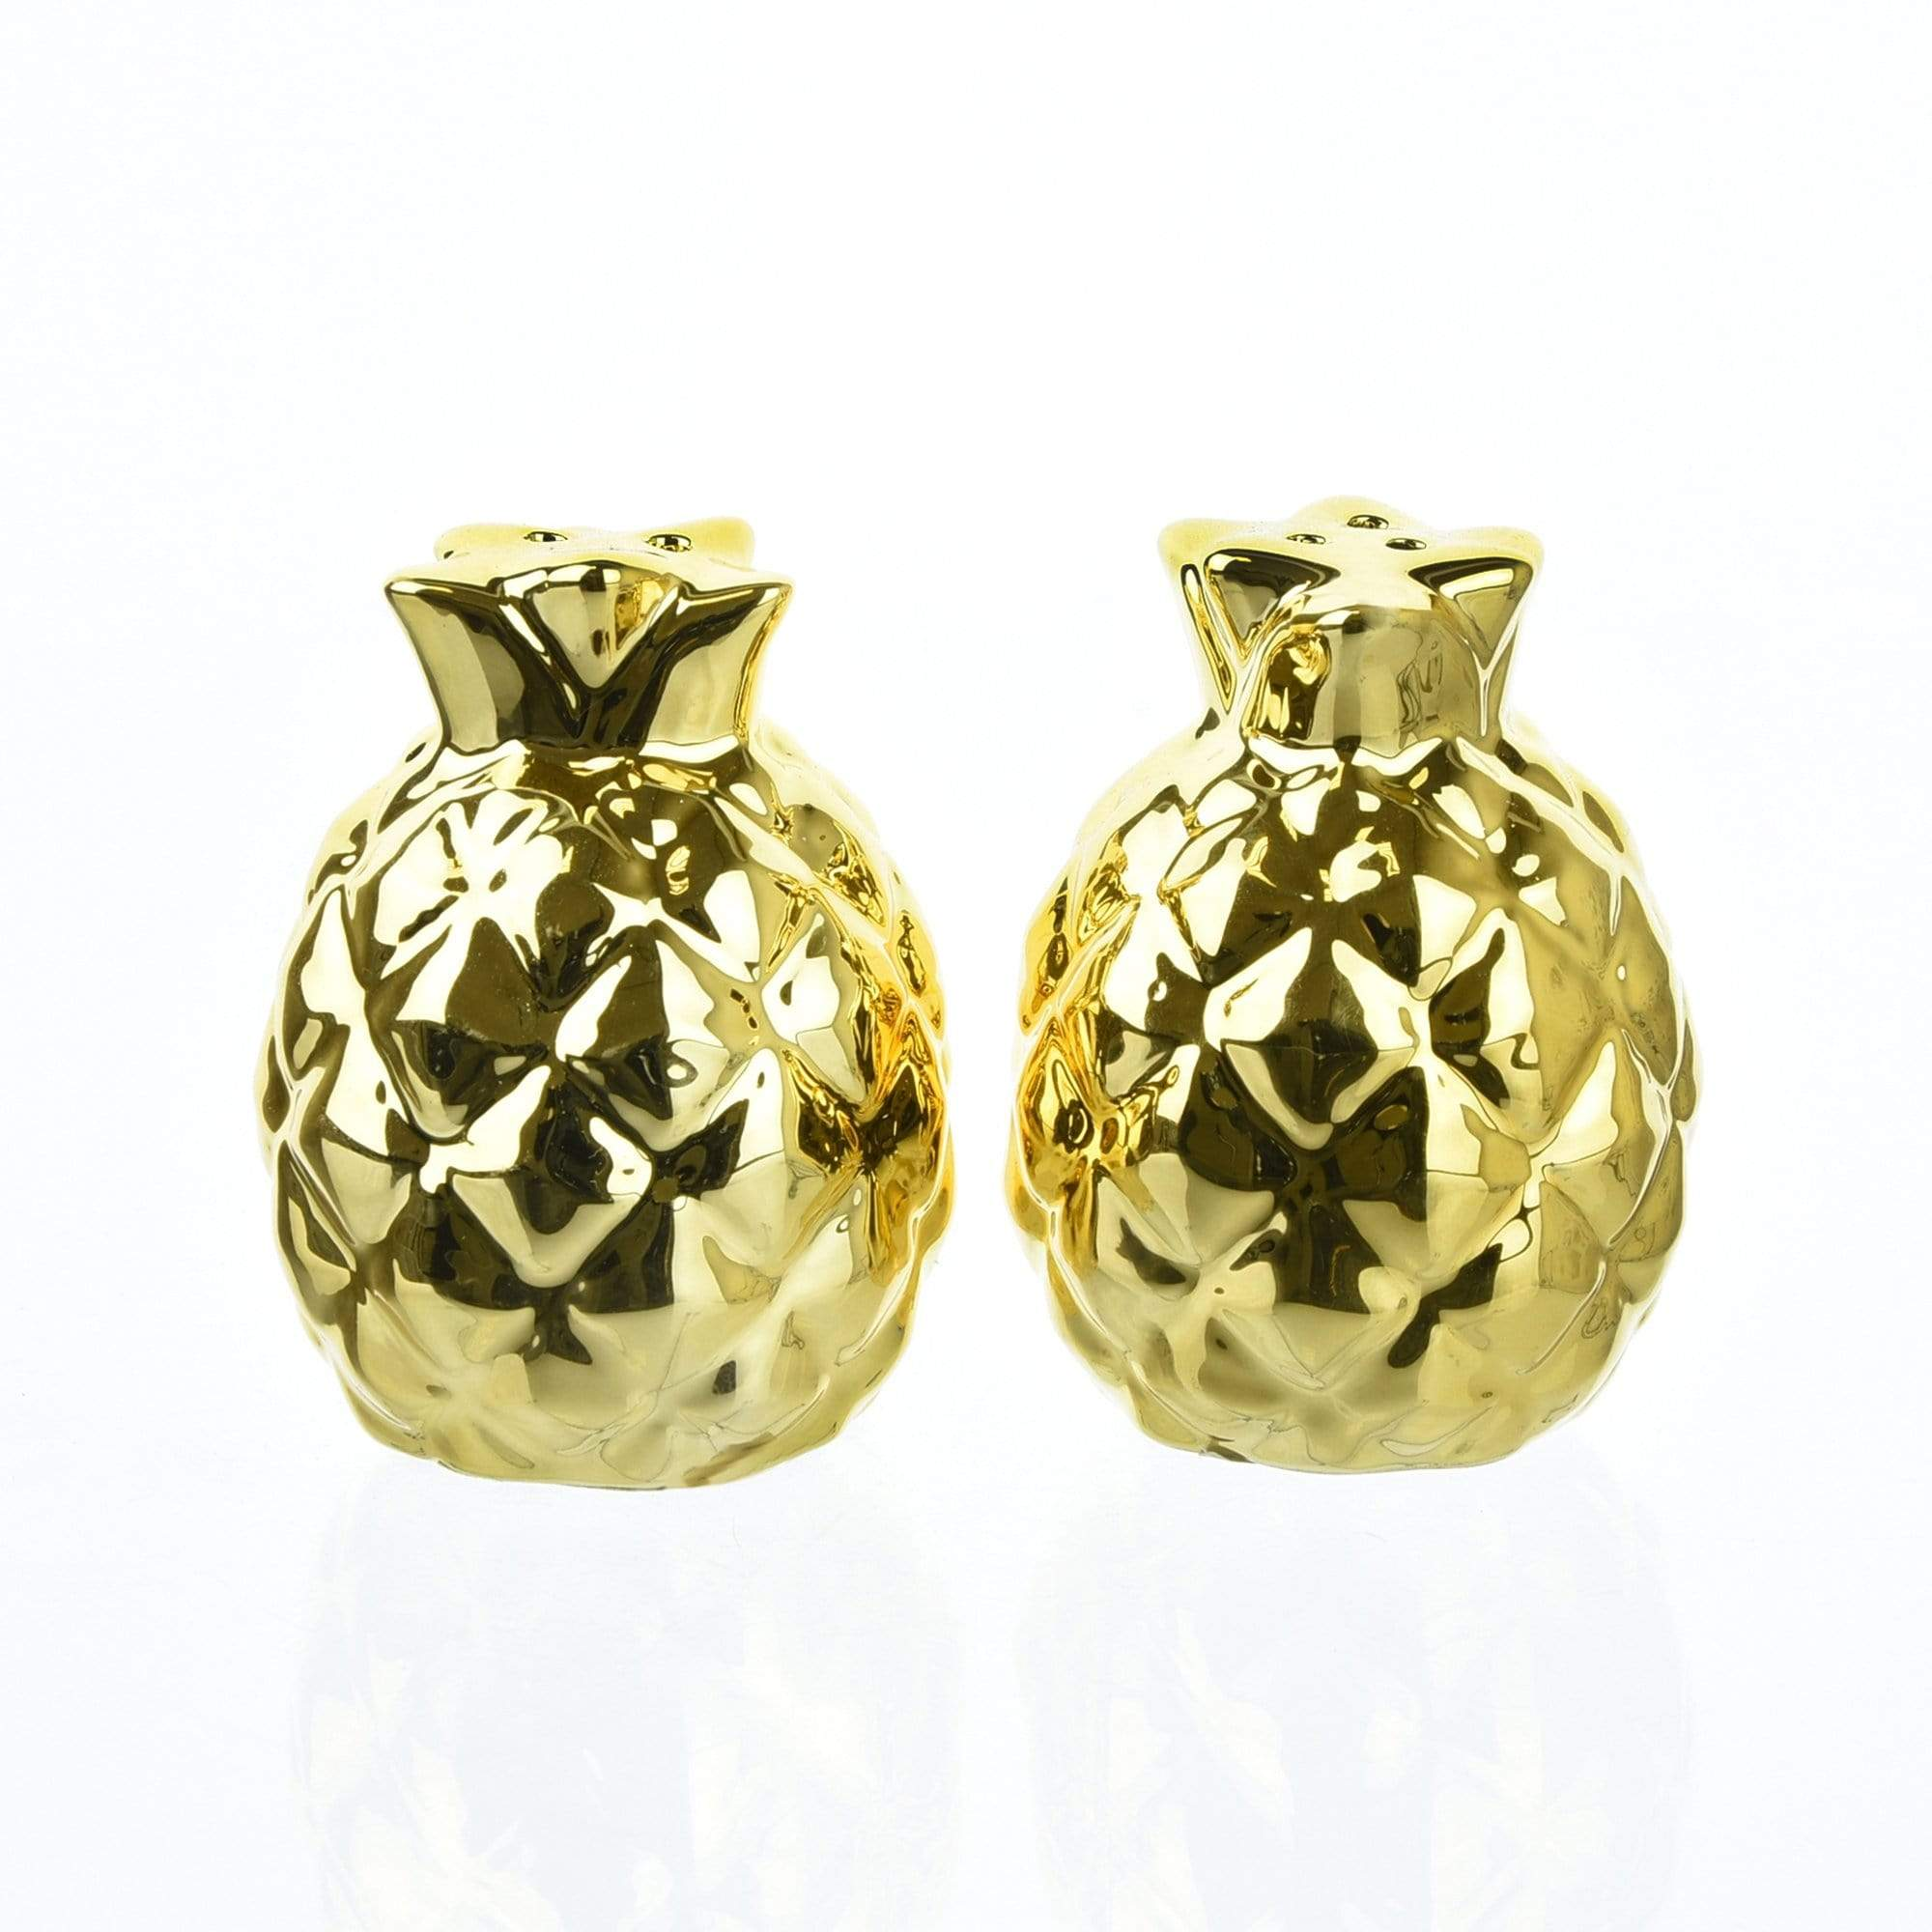 Deco Glam Pineapple Shaped Salt & Pepper ShakerGold 7cm 6PK